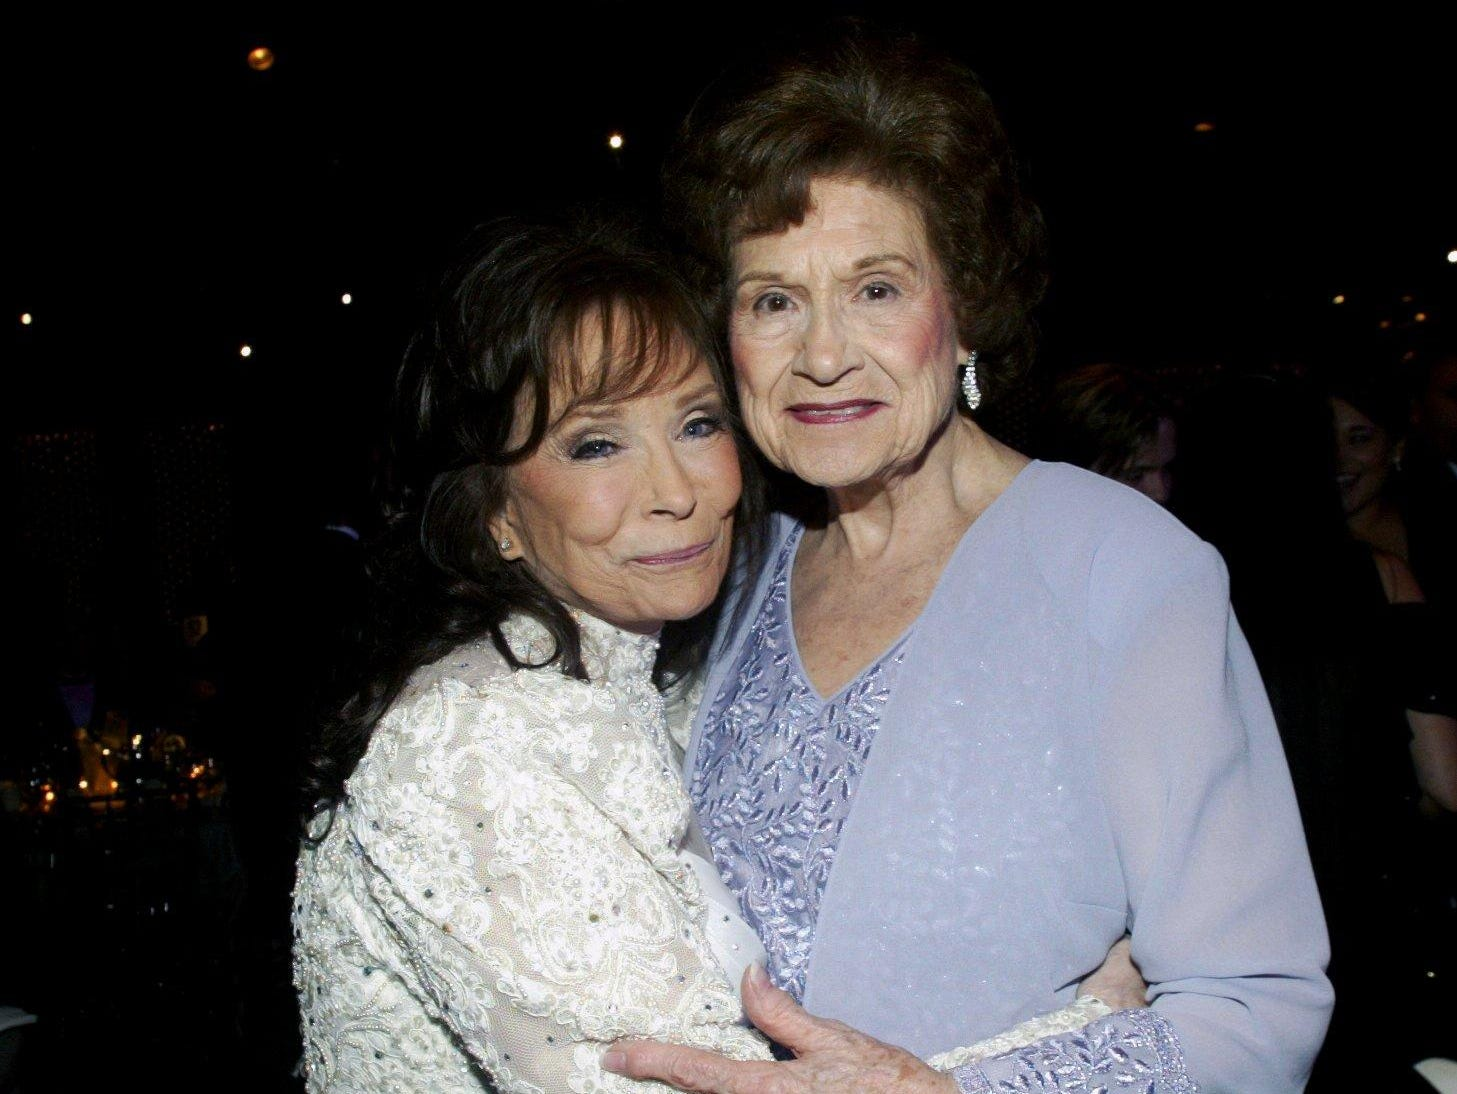 Loretta Lynn, left, hugs fellow Country Music Hall of Famer and friend Kitty Wells at the 2004 BMI Country Awards dinner and show Nov. 8, 2004. Lynn was given a BMI ICON award during a tribute to her.